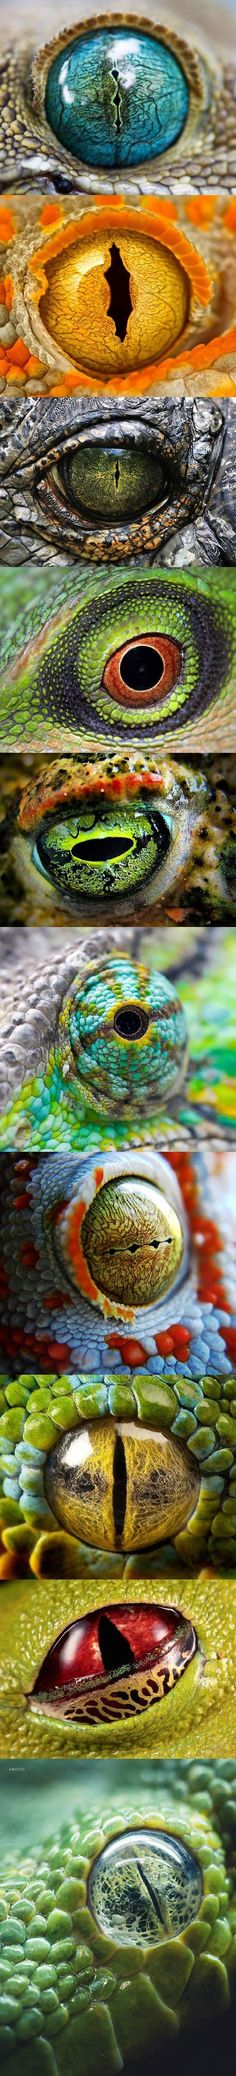 the eye of the lizard